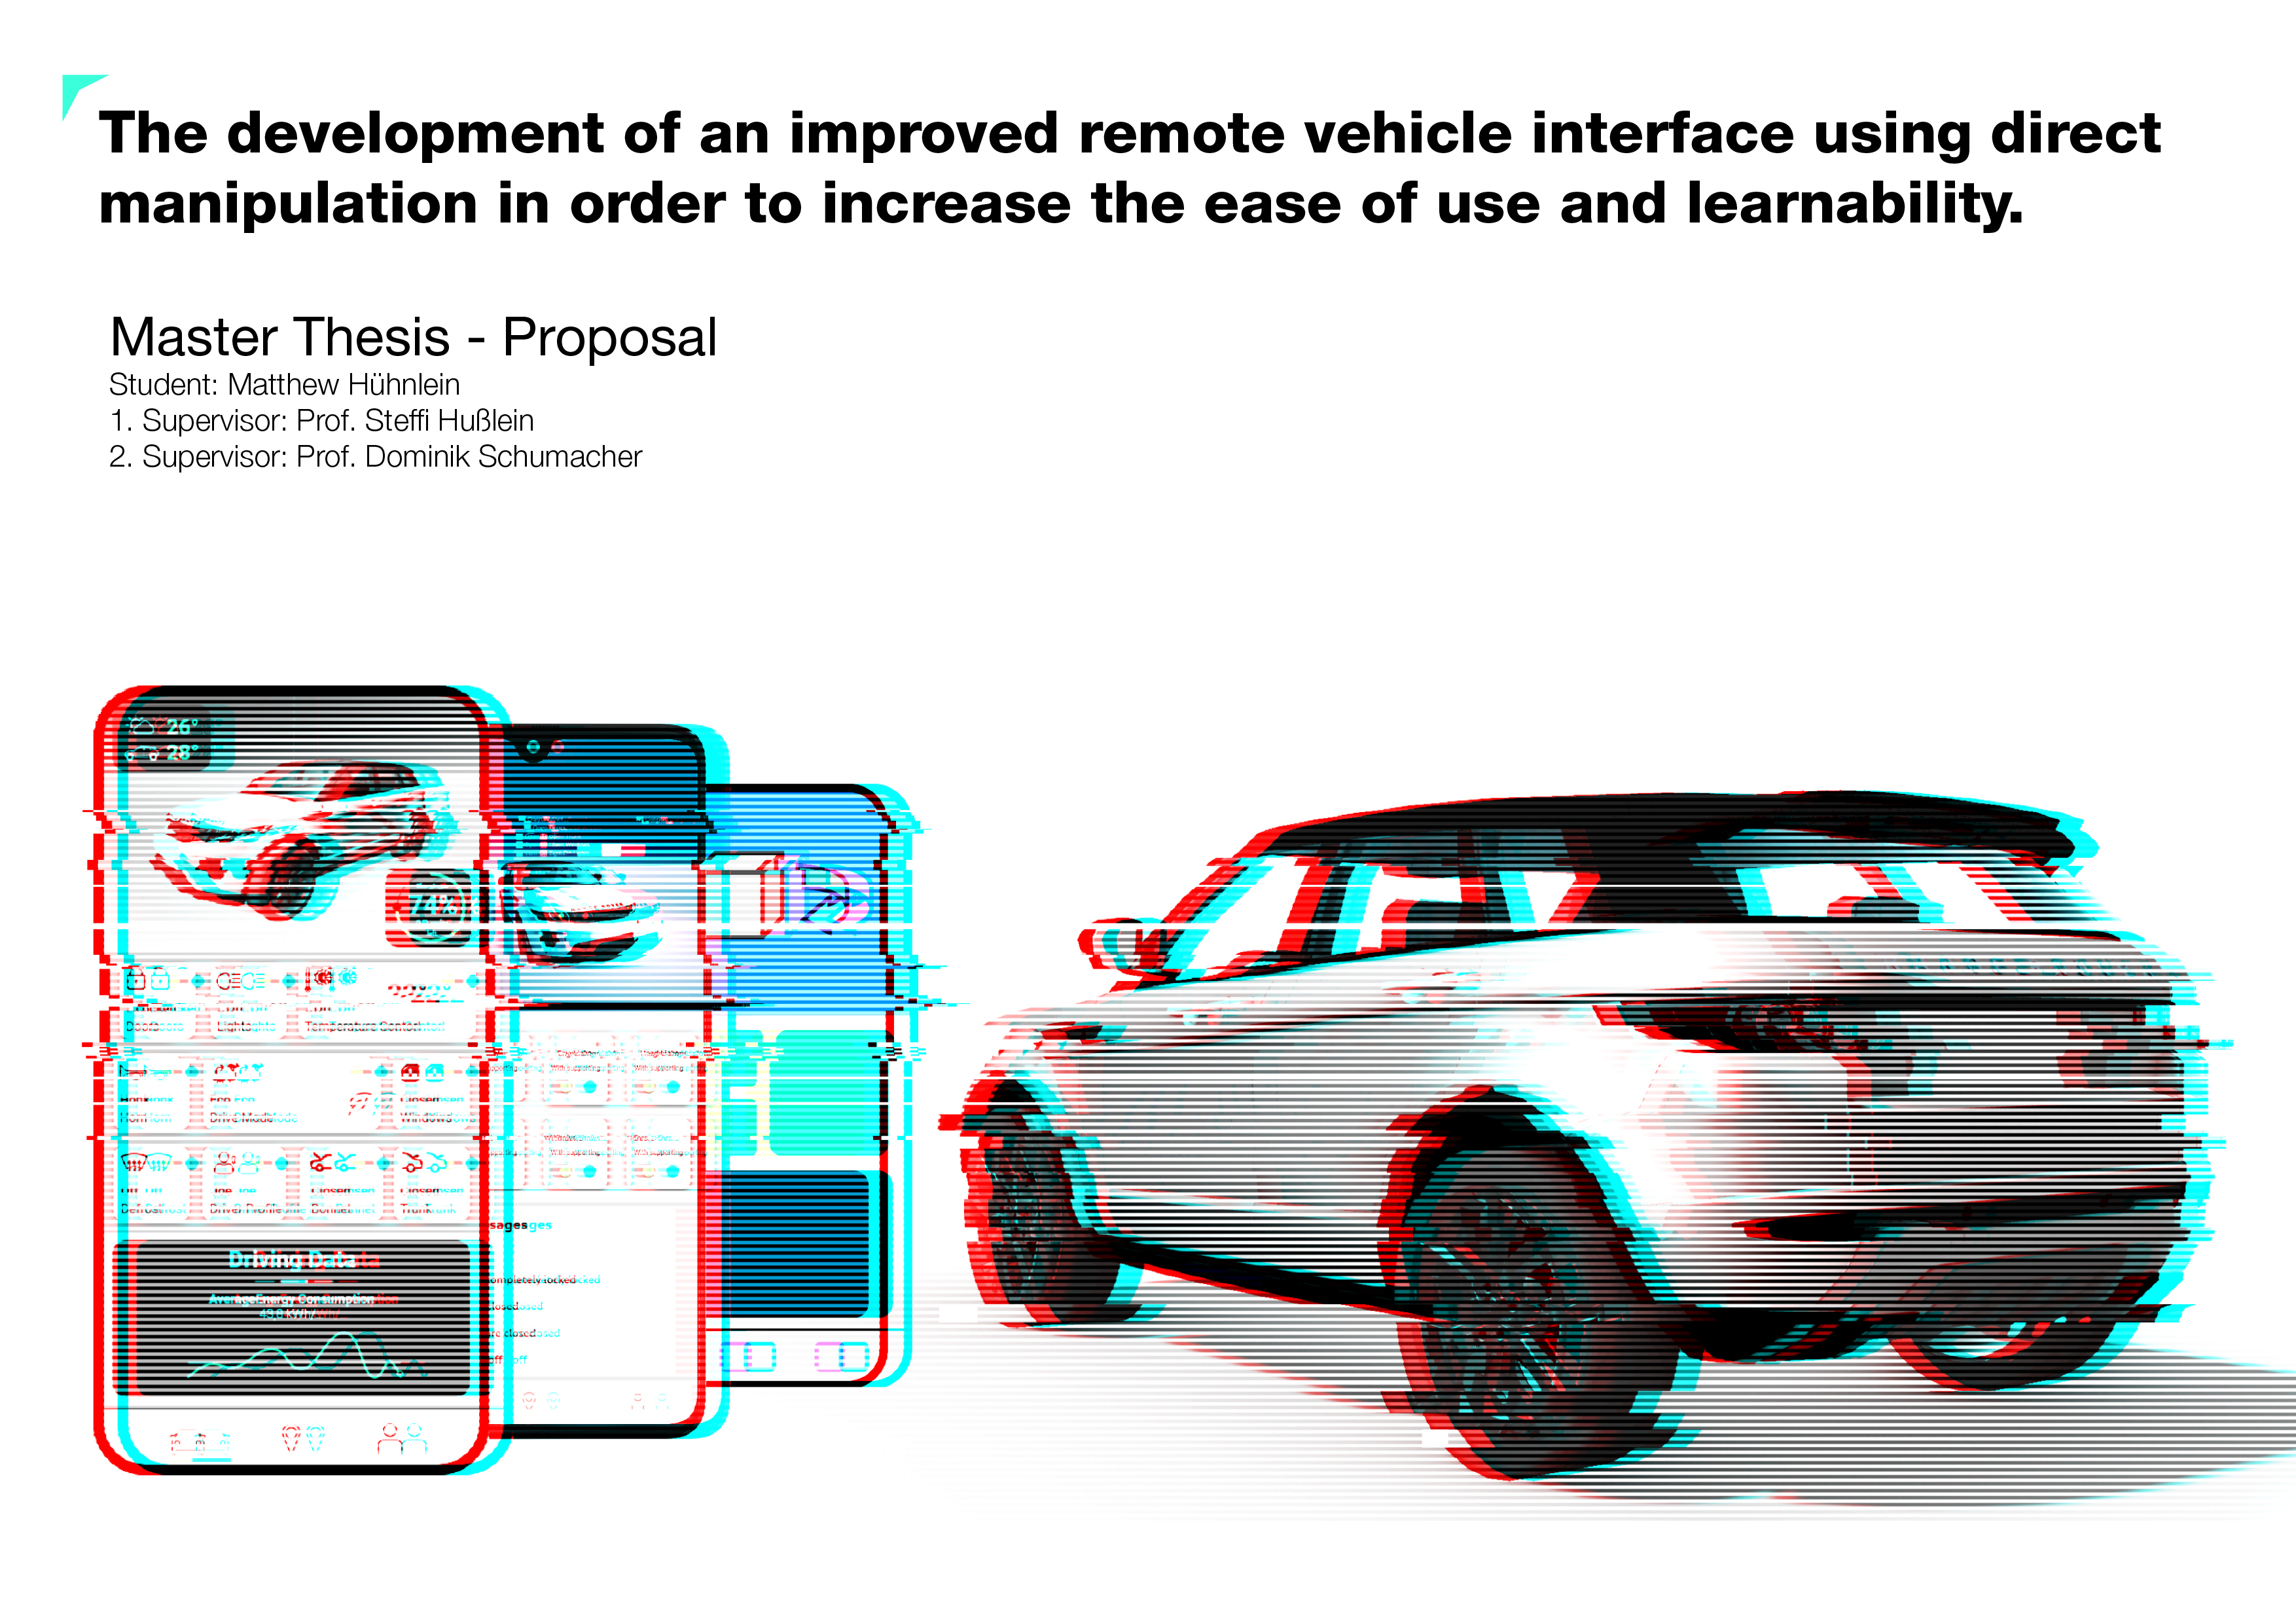 Master Proposal: The development of an improved remote vehicle interface using direct manipulation in order to increase the ease of use and learnability.